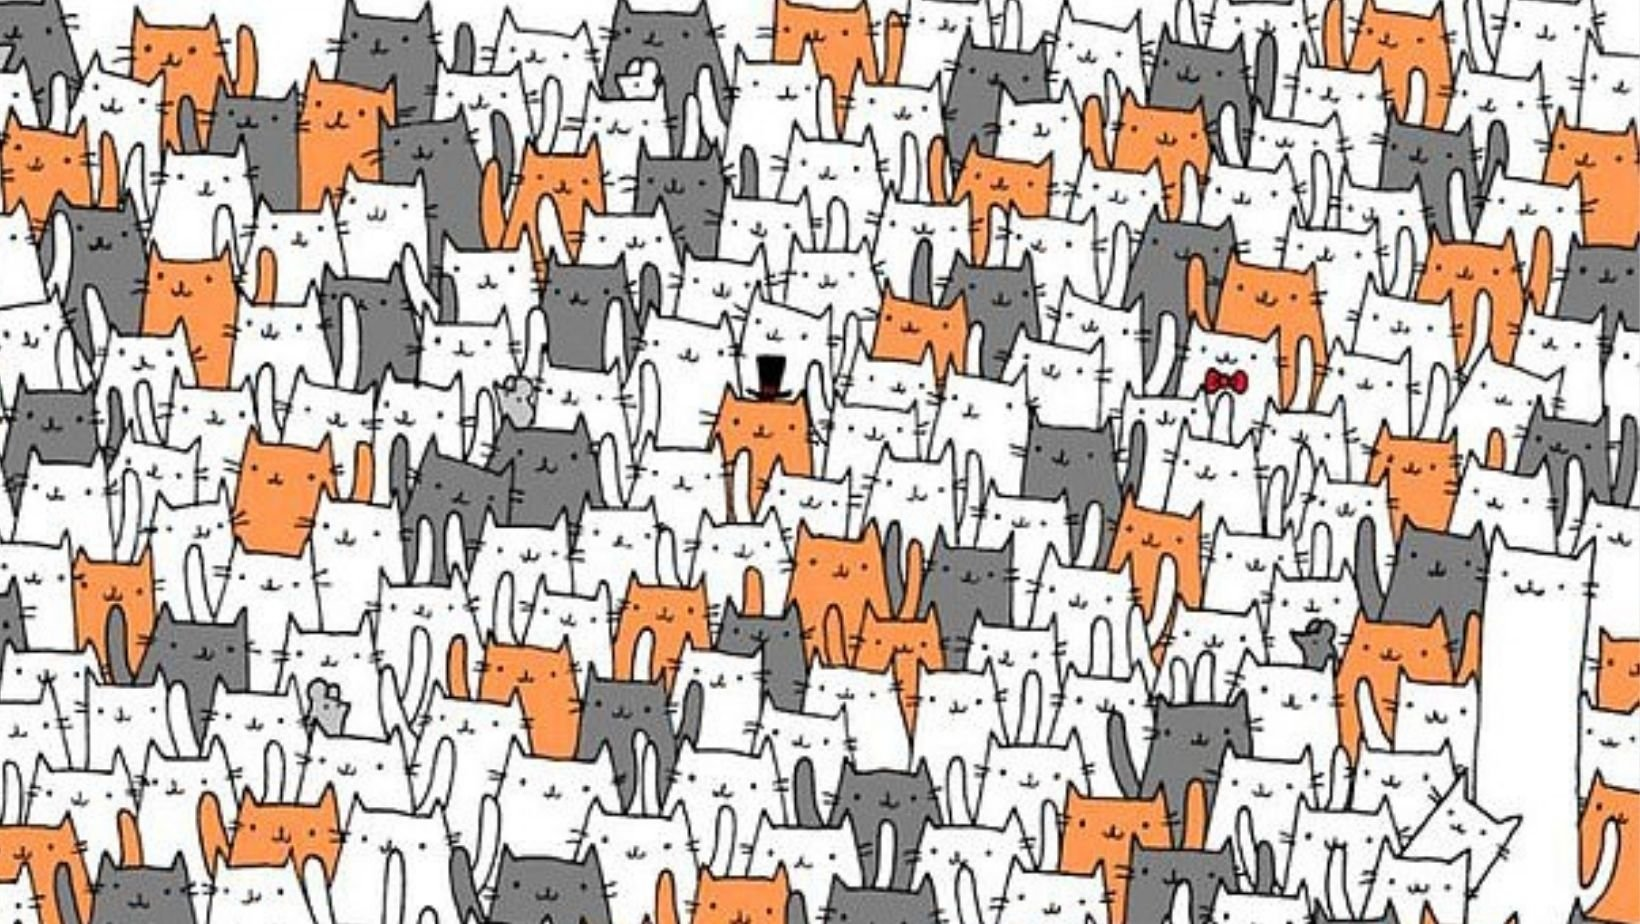 small joys thumbnail 3 3.jpg?resize=412,275 - Can You Find The Hidden Rabbit In Less Than 60 Seconds?